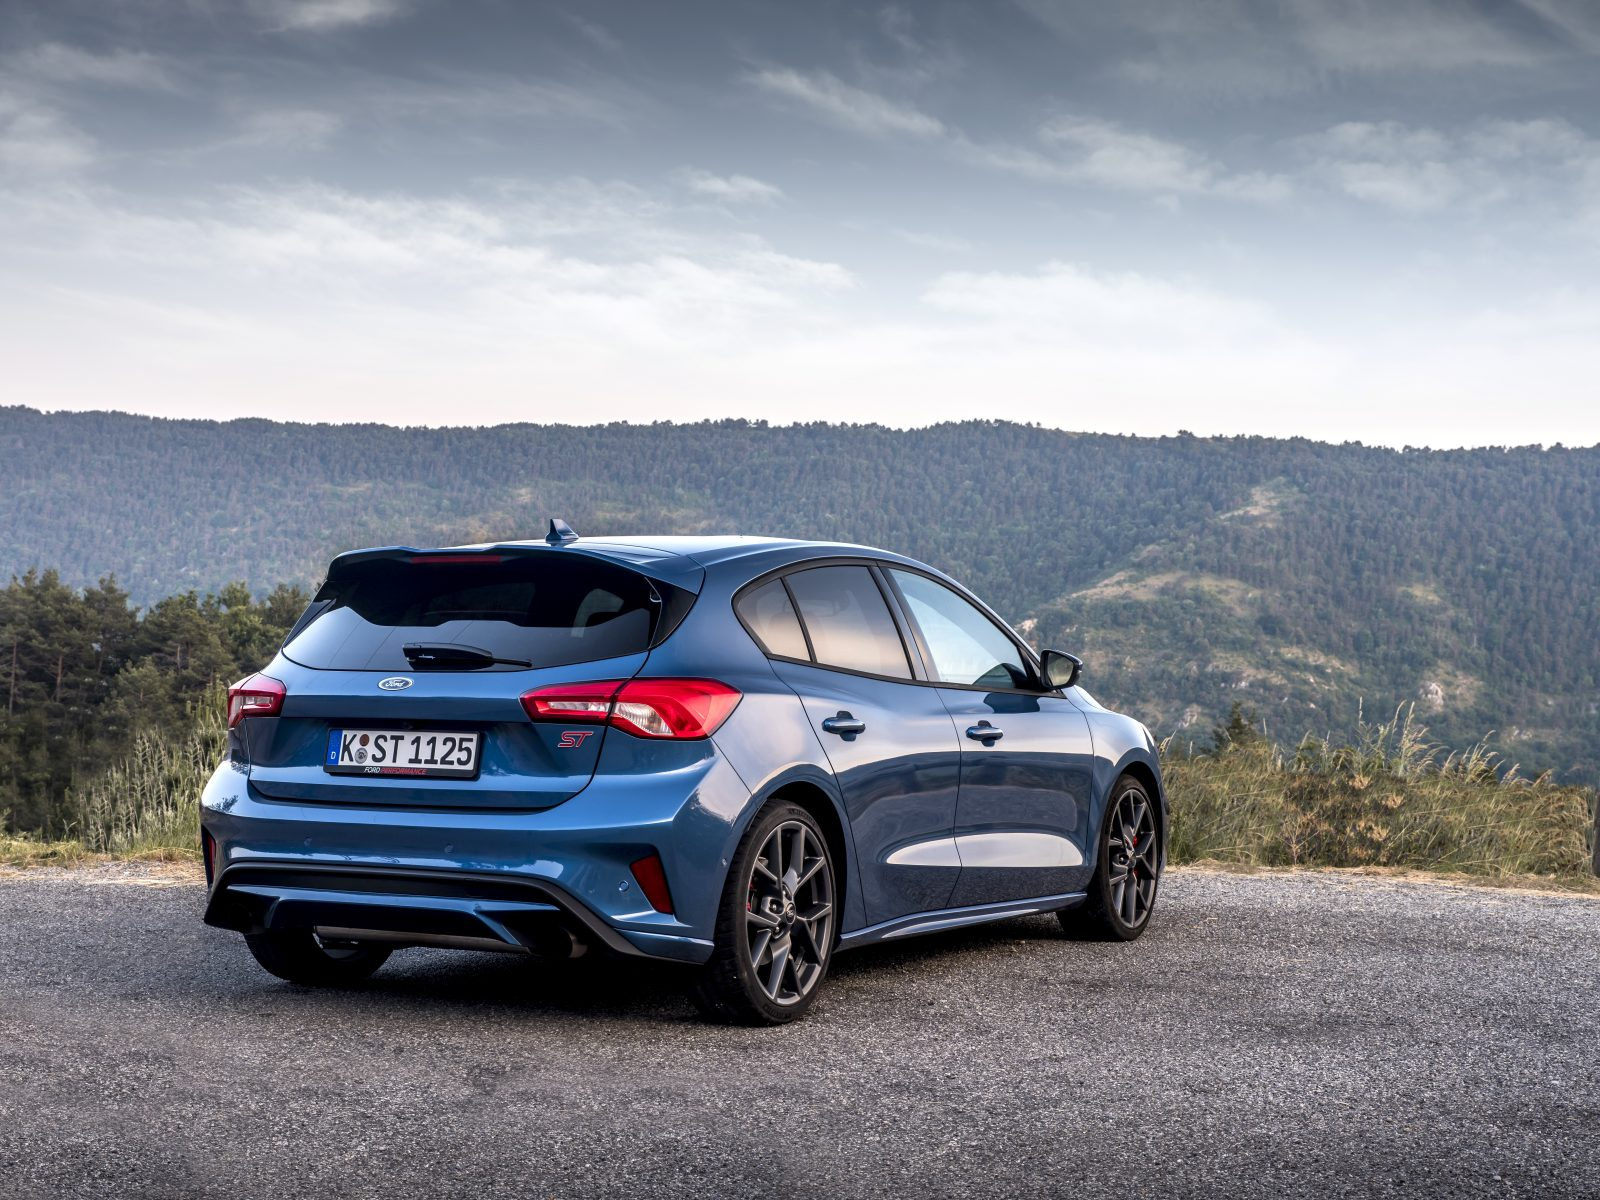 Rear view of Ford Focus ST